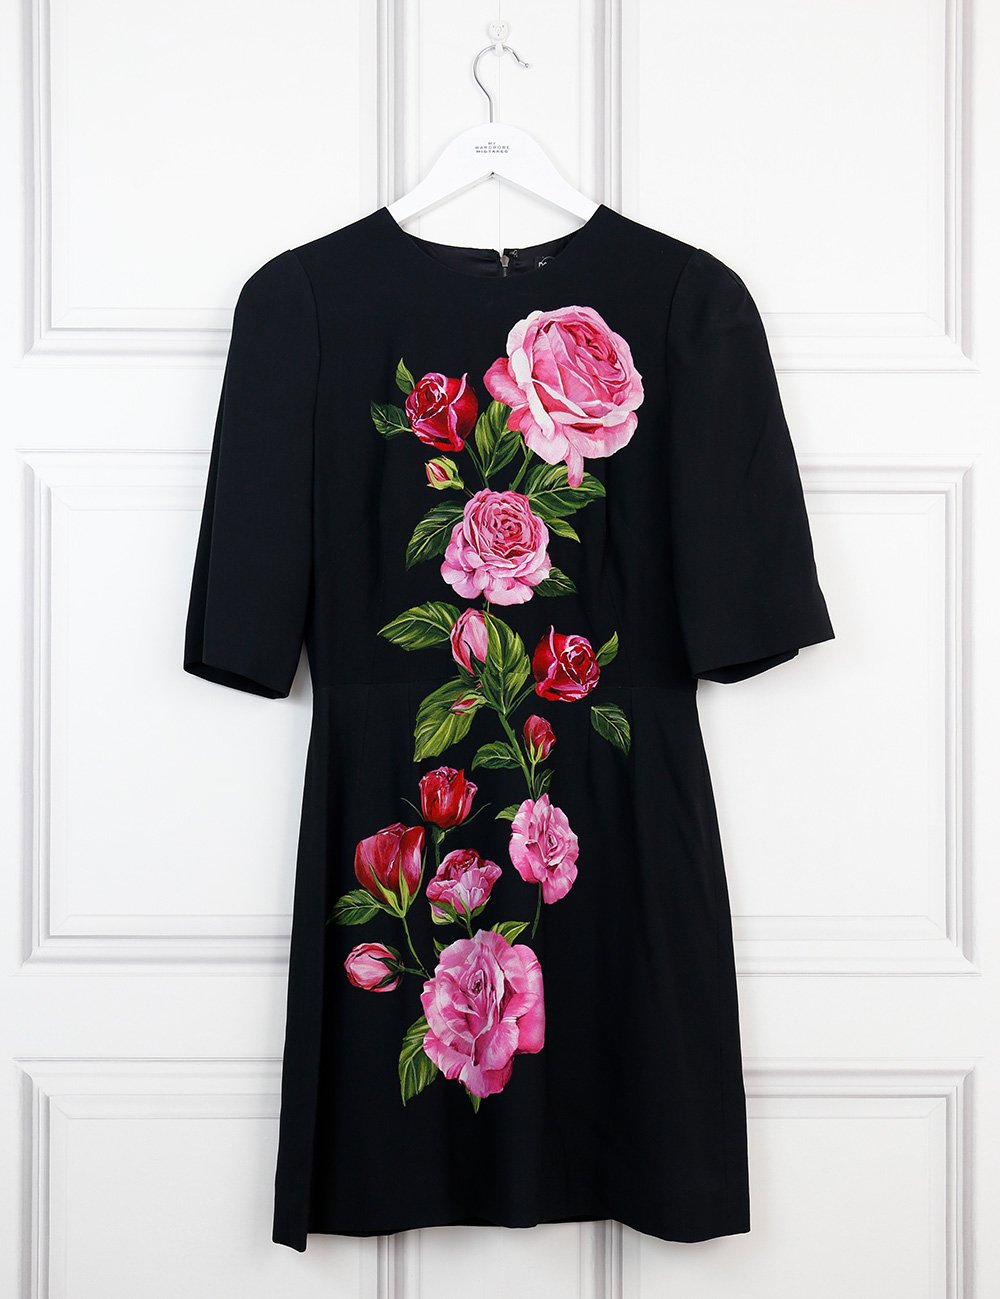 Dolce&Gabbana multicolour A-line dress with rose motif 8UK- My Wardrobe Mistakes